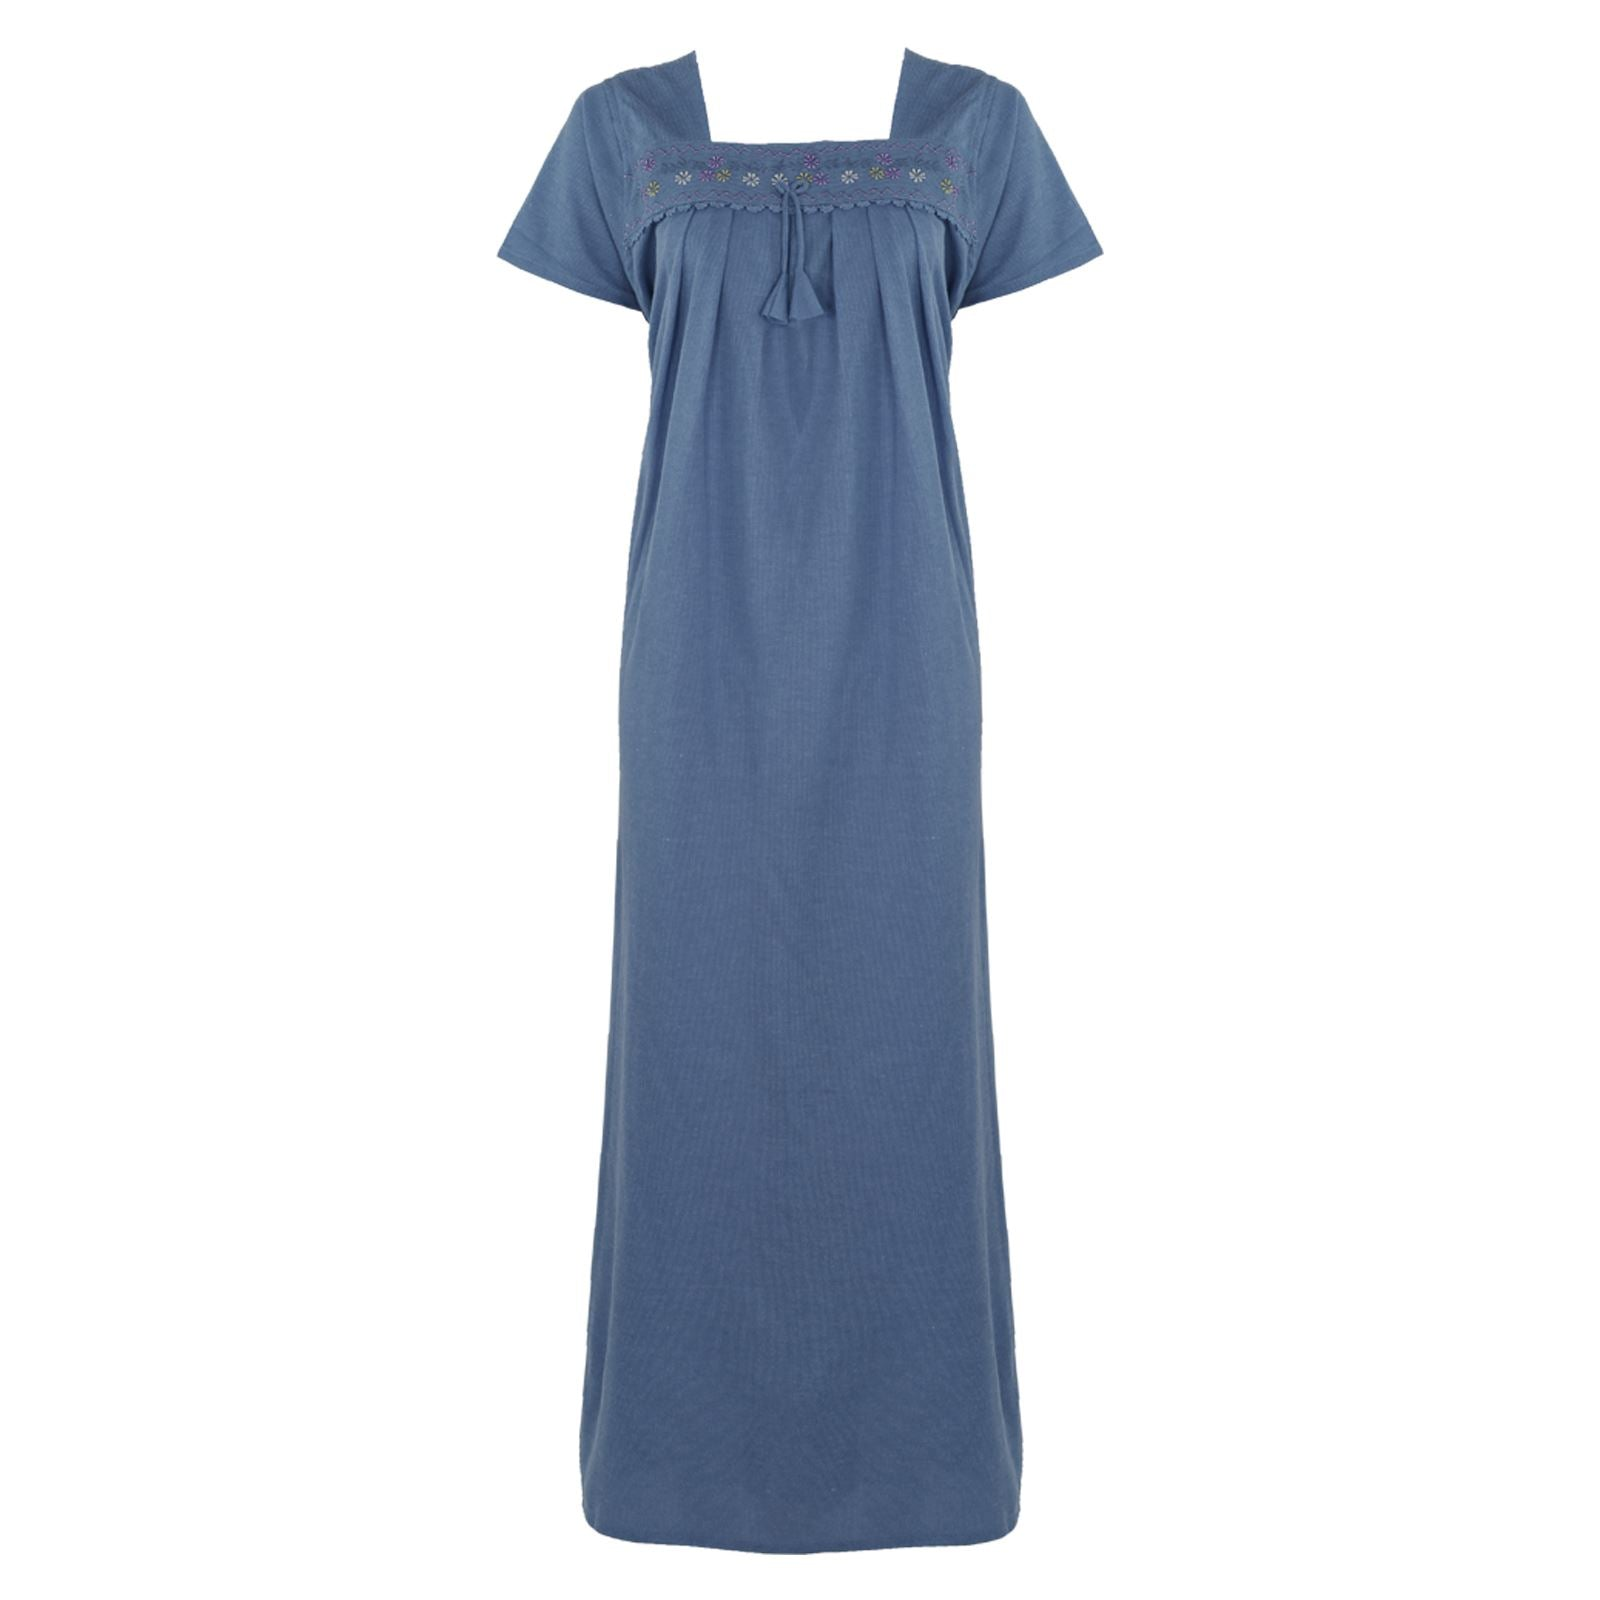 Cotton Rich Winter Nightdress [colour]- Hautie UK, #Nightfashion | #Underfashion